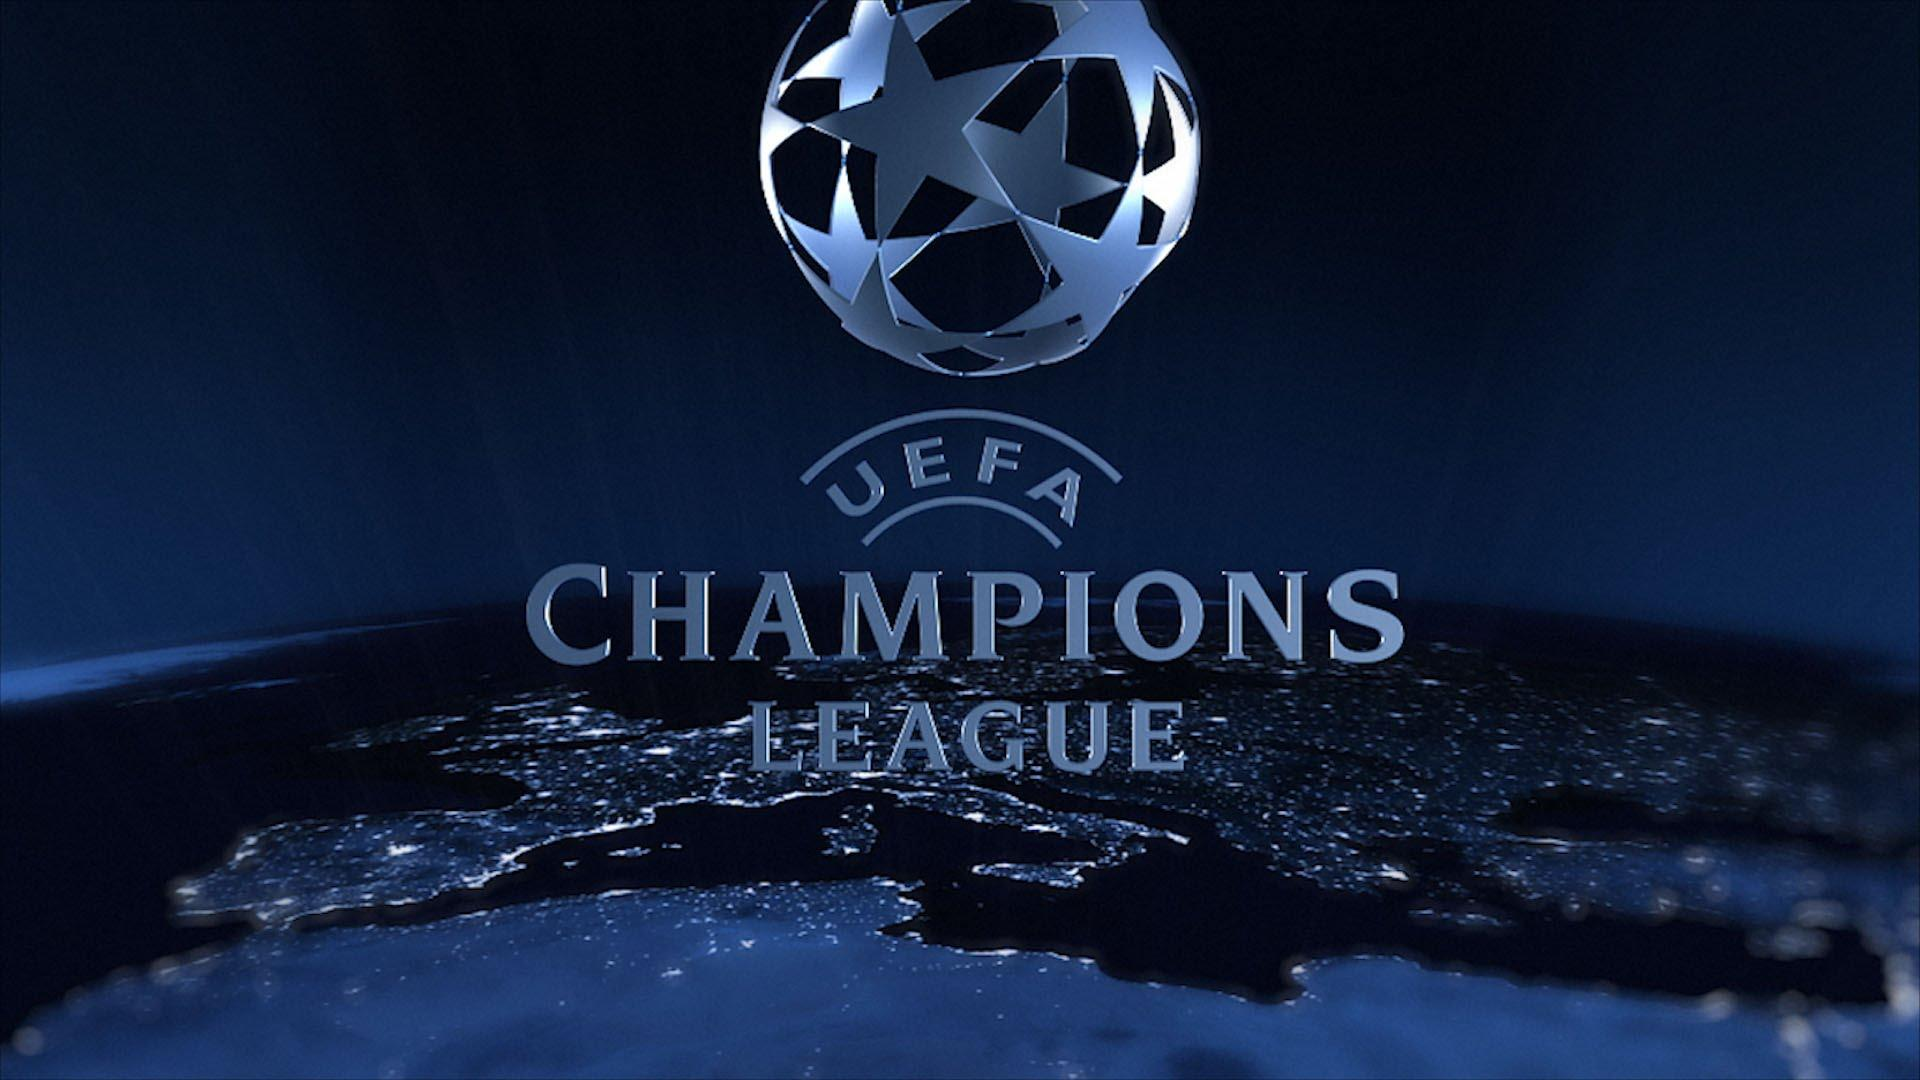 Free download UEFA Champions League Wallpapers HD Wallpapers